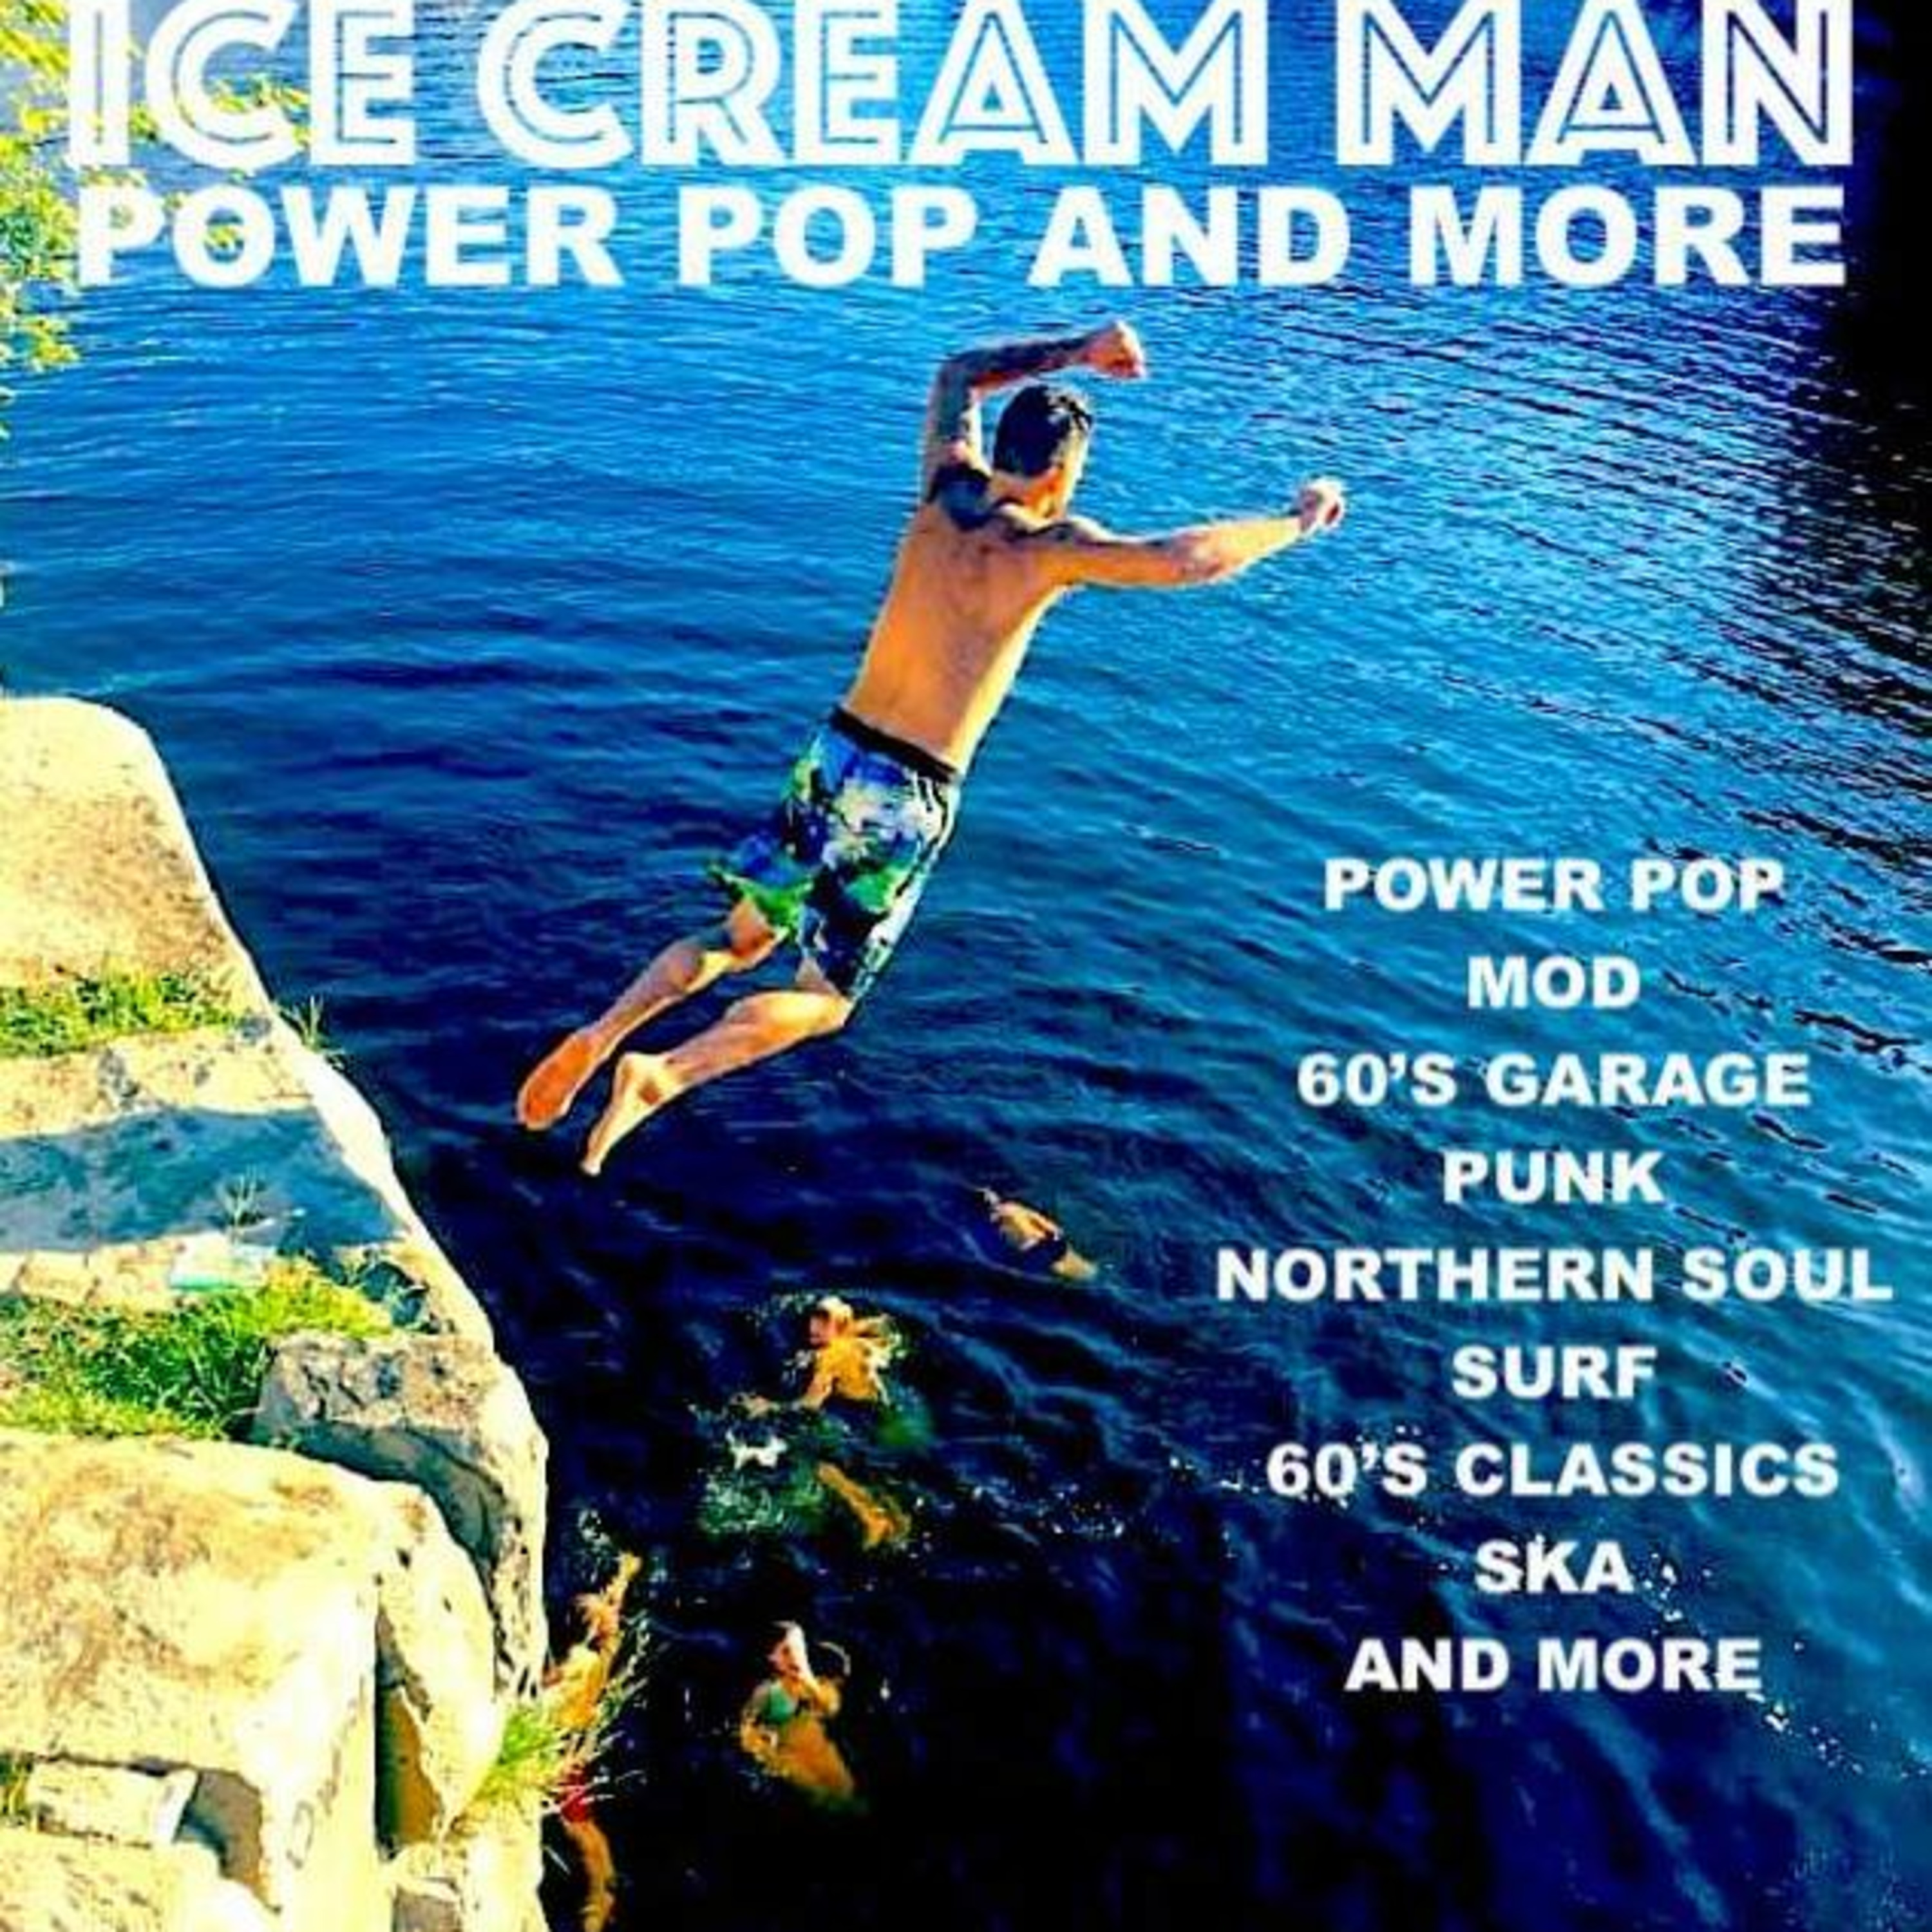 Ice Cream Man Power Pop and More #318